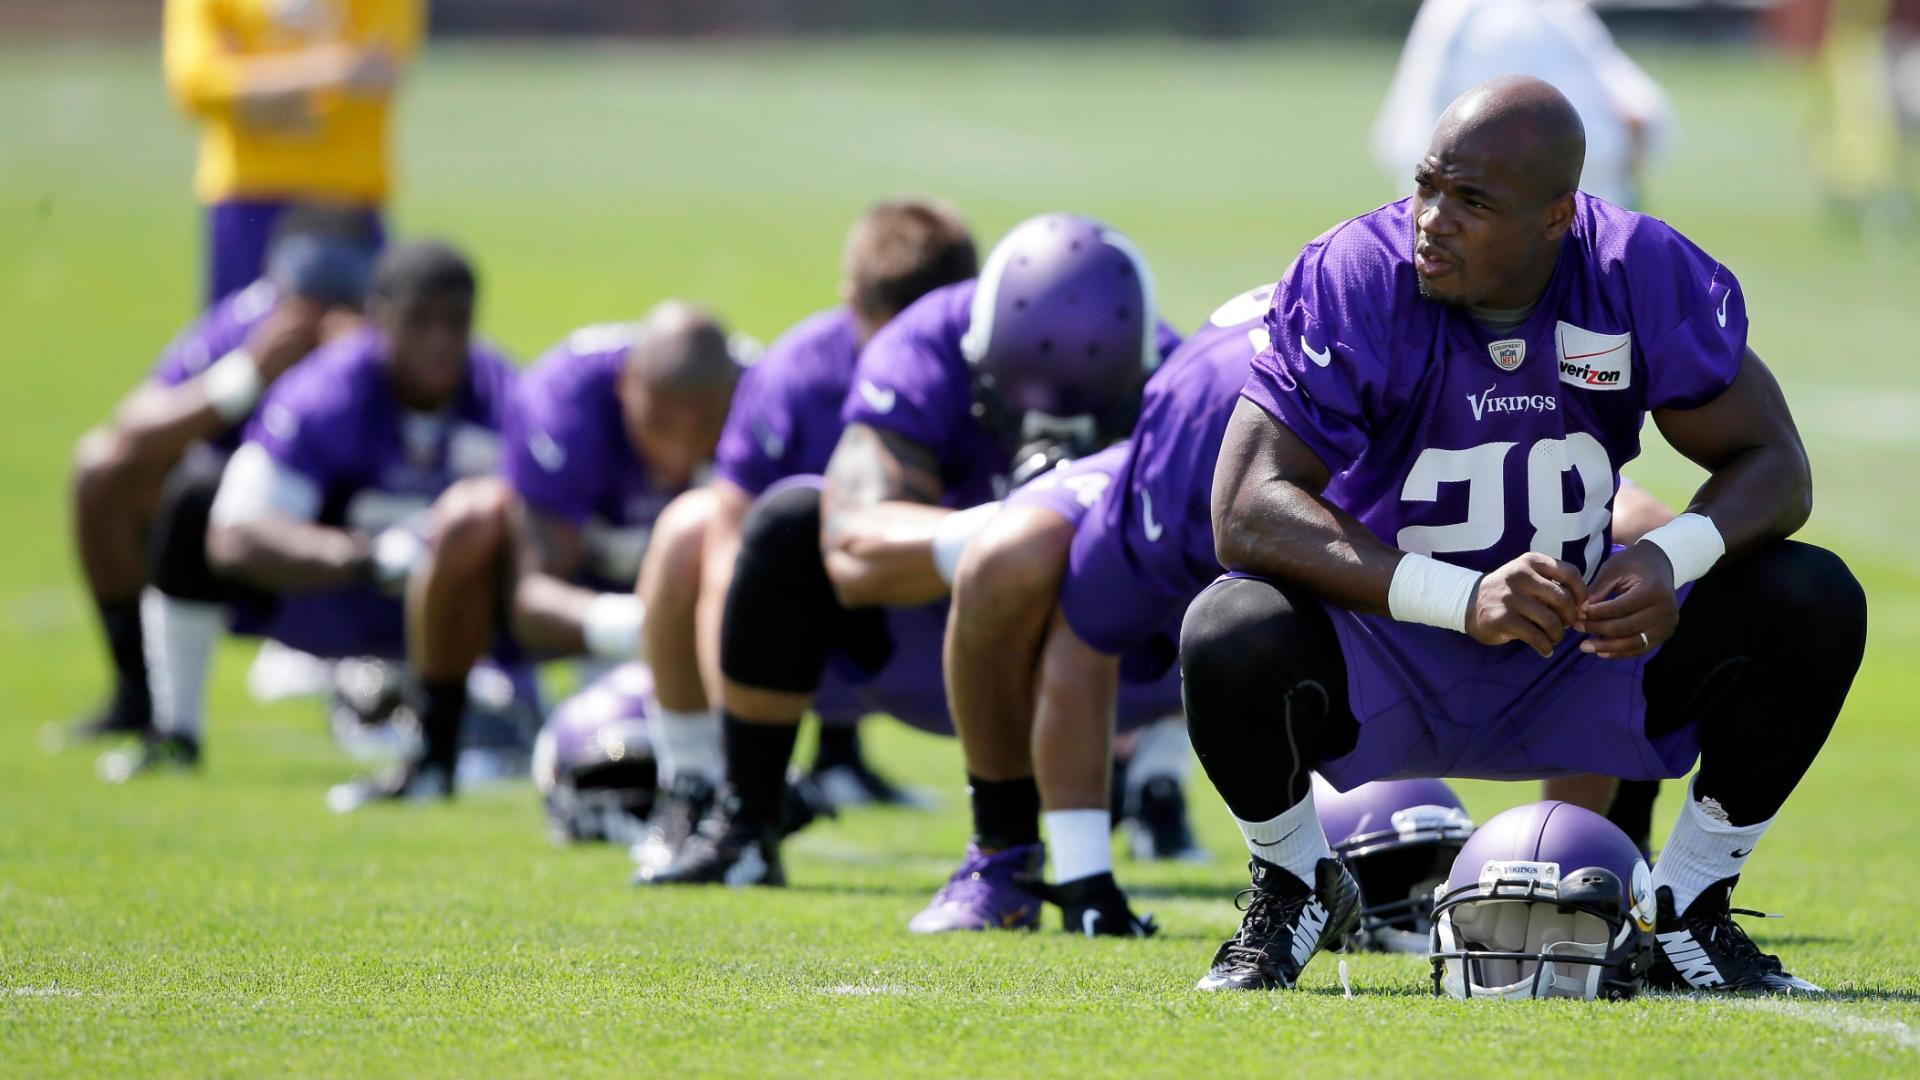 http://a.espncdn.com/media/motion/2015/0420/dm_150420_nfl_news_adrian_peterson_vikings_workout1024/dm_150420_nfl_news_adrian_peterson_vikings_workout1024.jpg